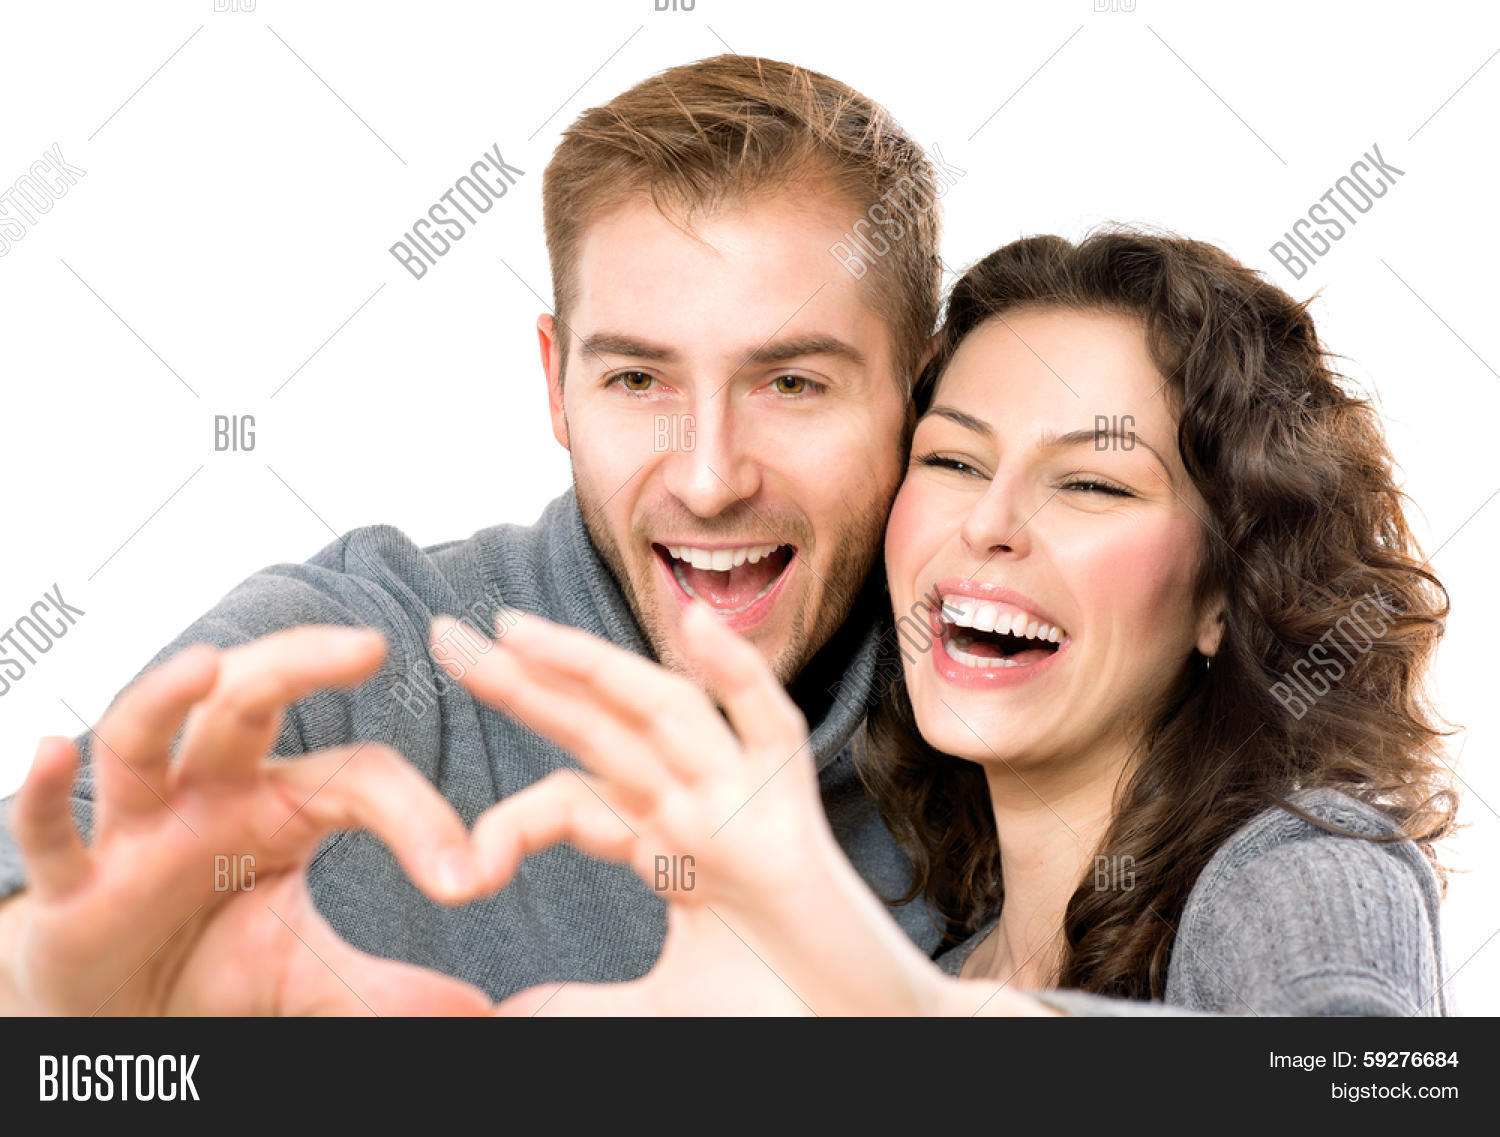 Valentine Couple isolated on white background. Portrait of Smiling Beauty Girl and her Handsome Boyfriend making shape of Heart by their Hands. Happy Joyful Family. Heart Sign. Valentines Day